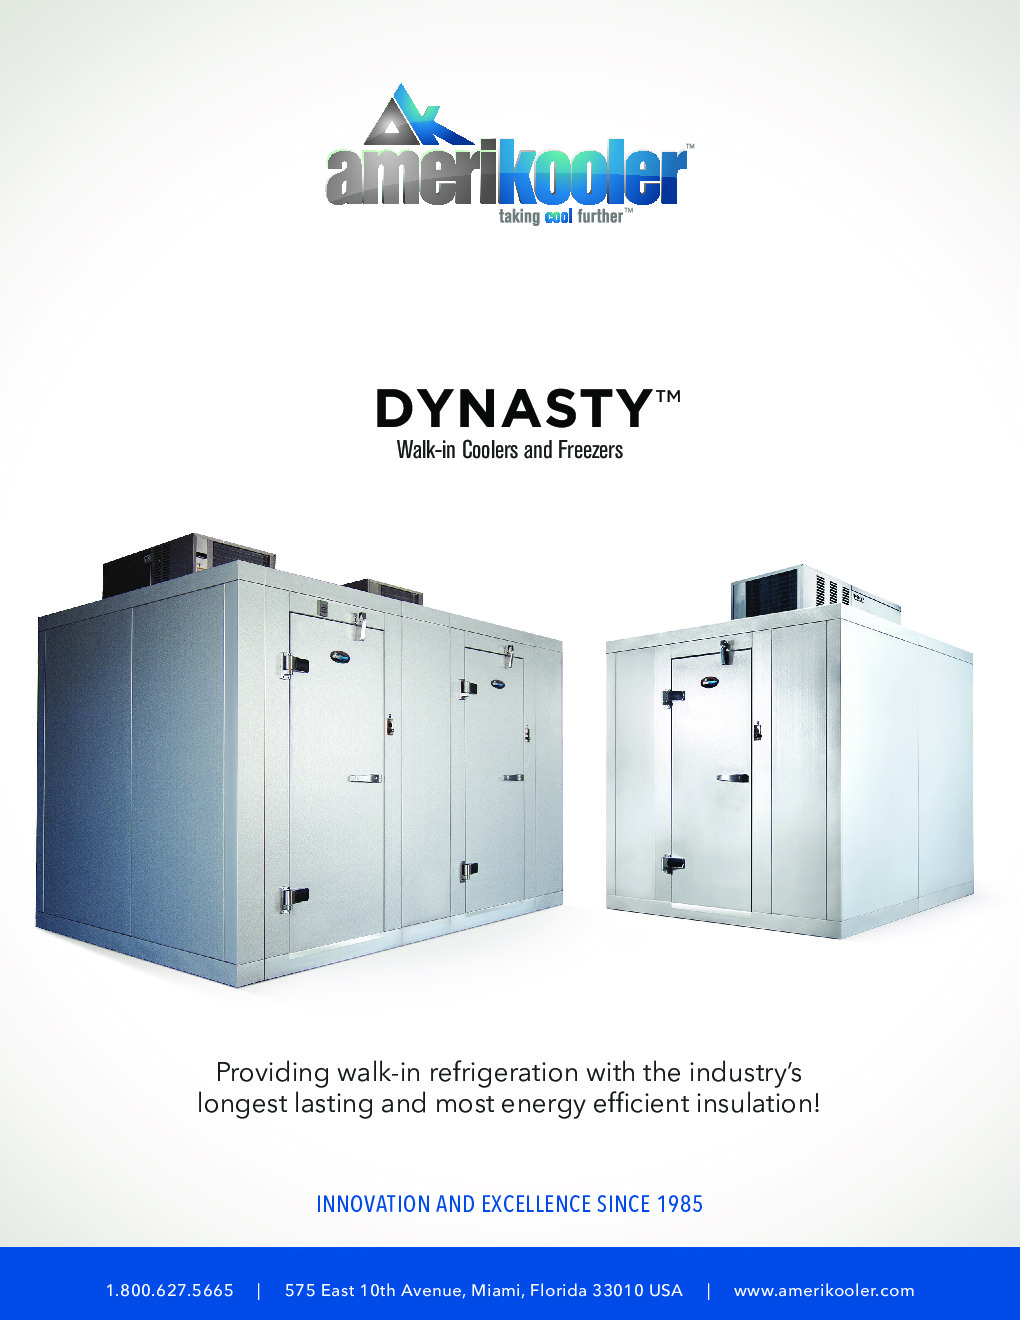 AmeriKooler DW091177N-4/7 Indoor 9' X 11' Walk-In, 7' L Cooler without Floor and 4' L Freezer, Box Only